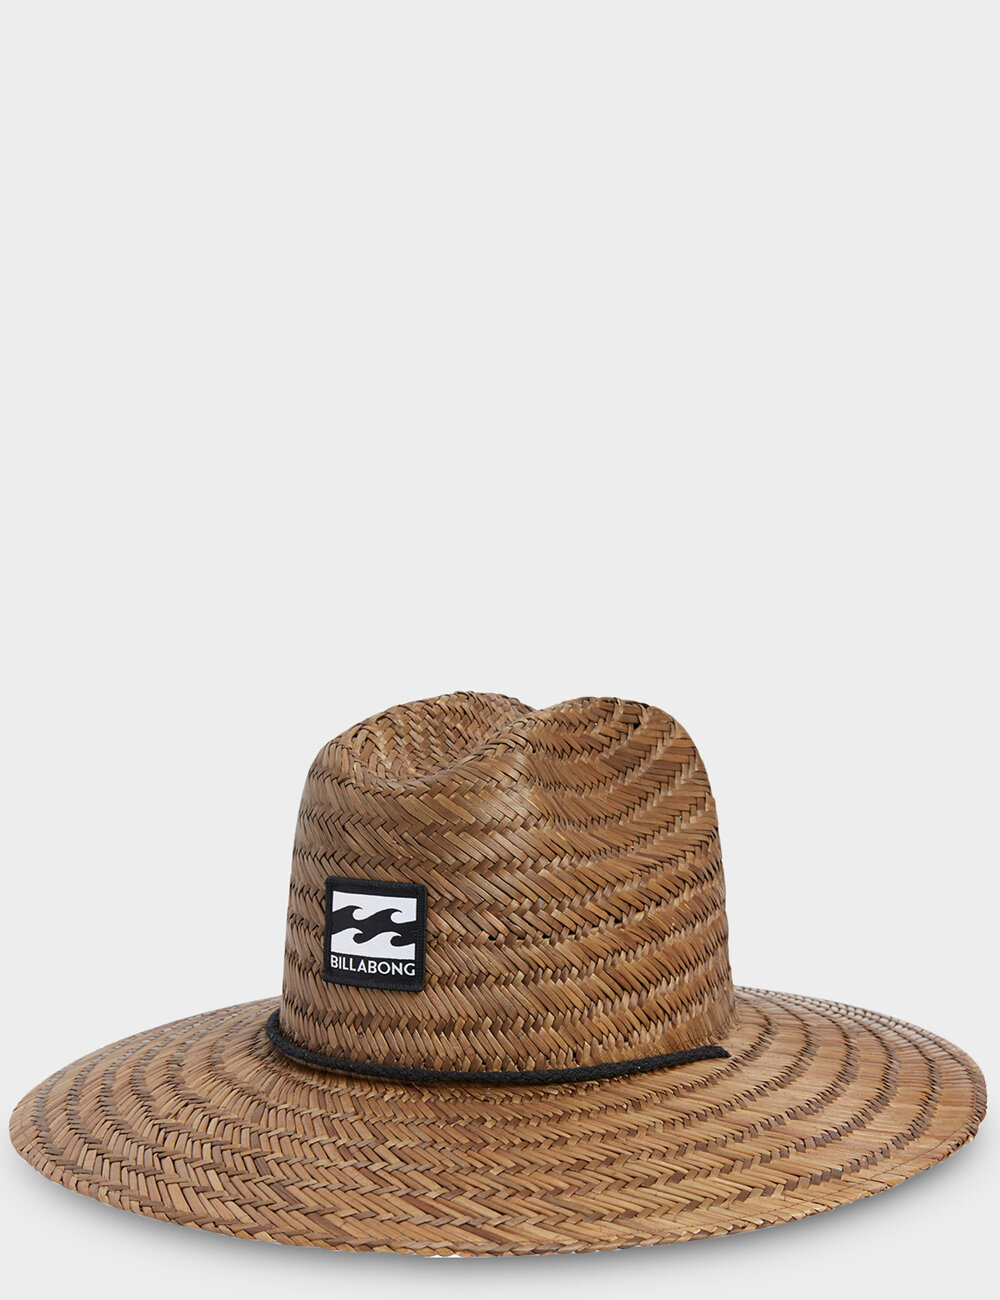 Cowboy Hats For Sale Auckland - Parchment N Lead f134bb7618ad